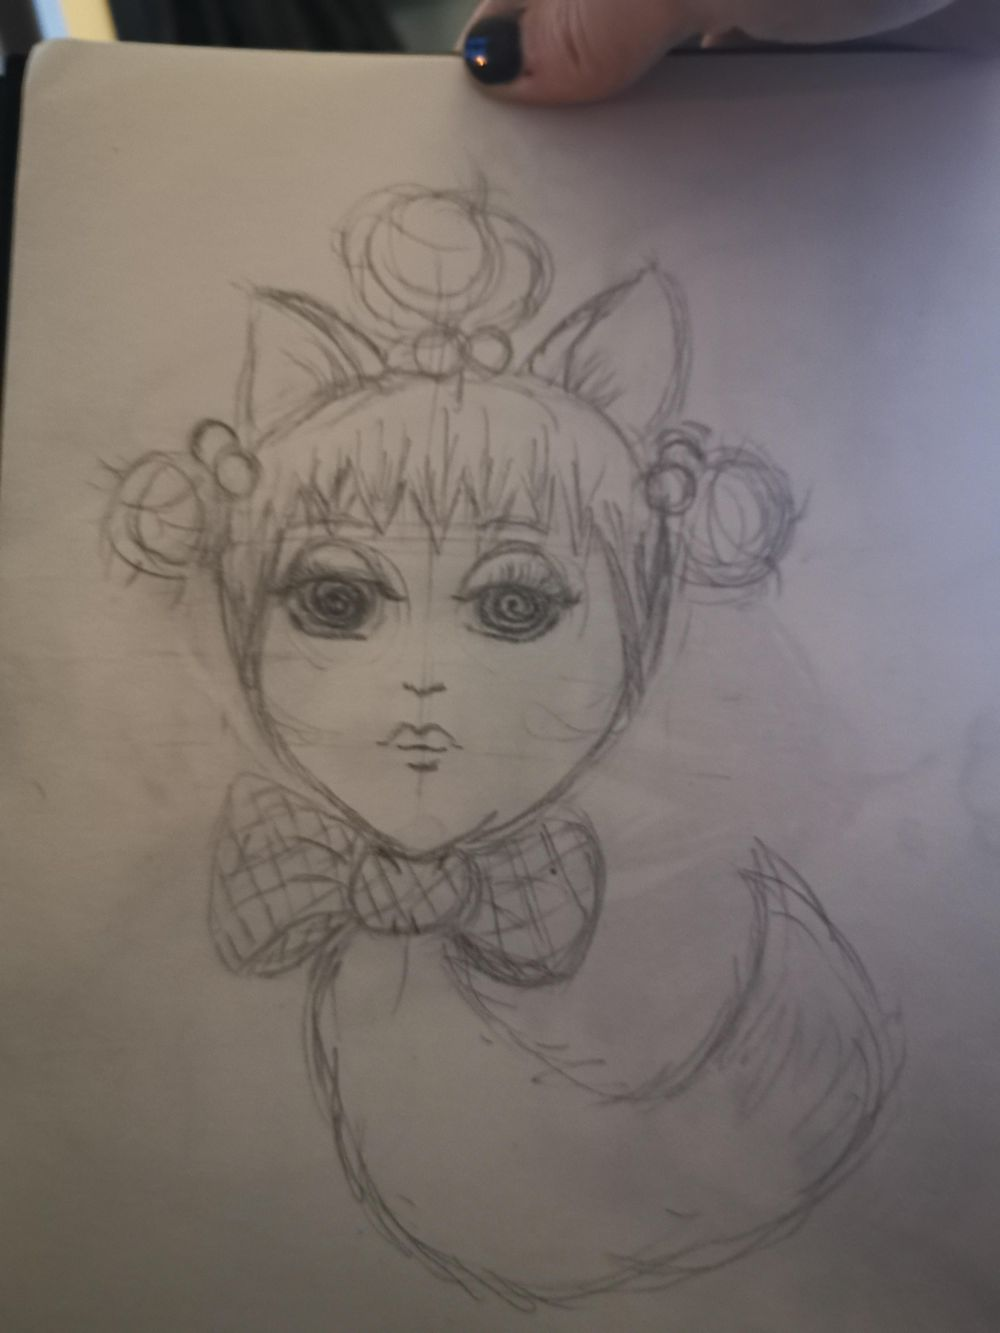 Foxy Girl - image 2 - student project